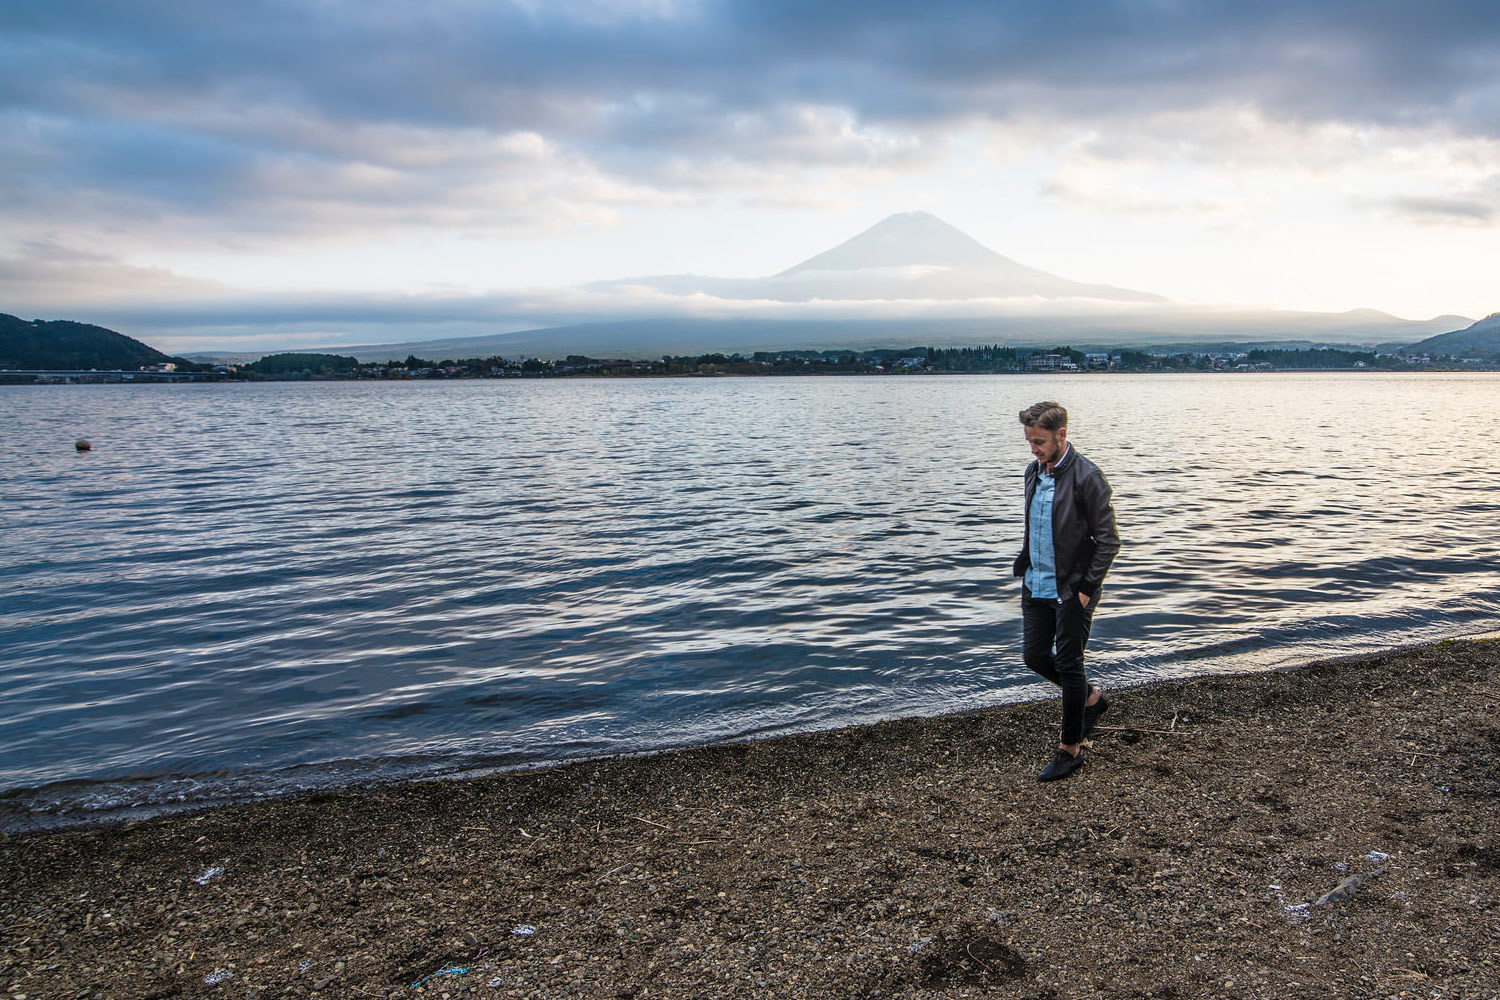 Robert Schrader at Mt Fuji